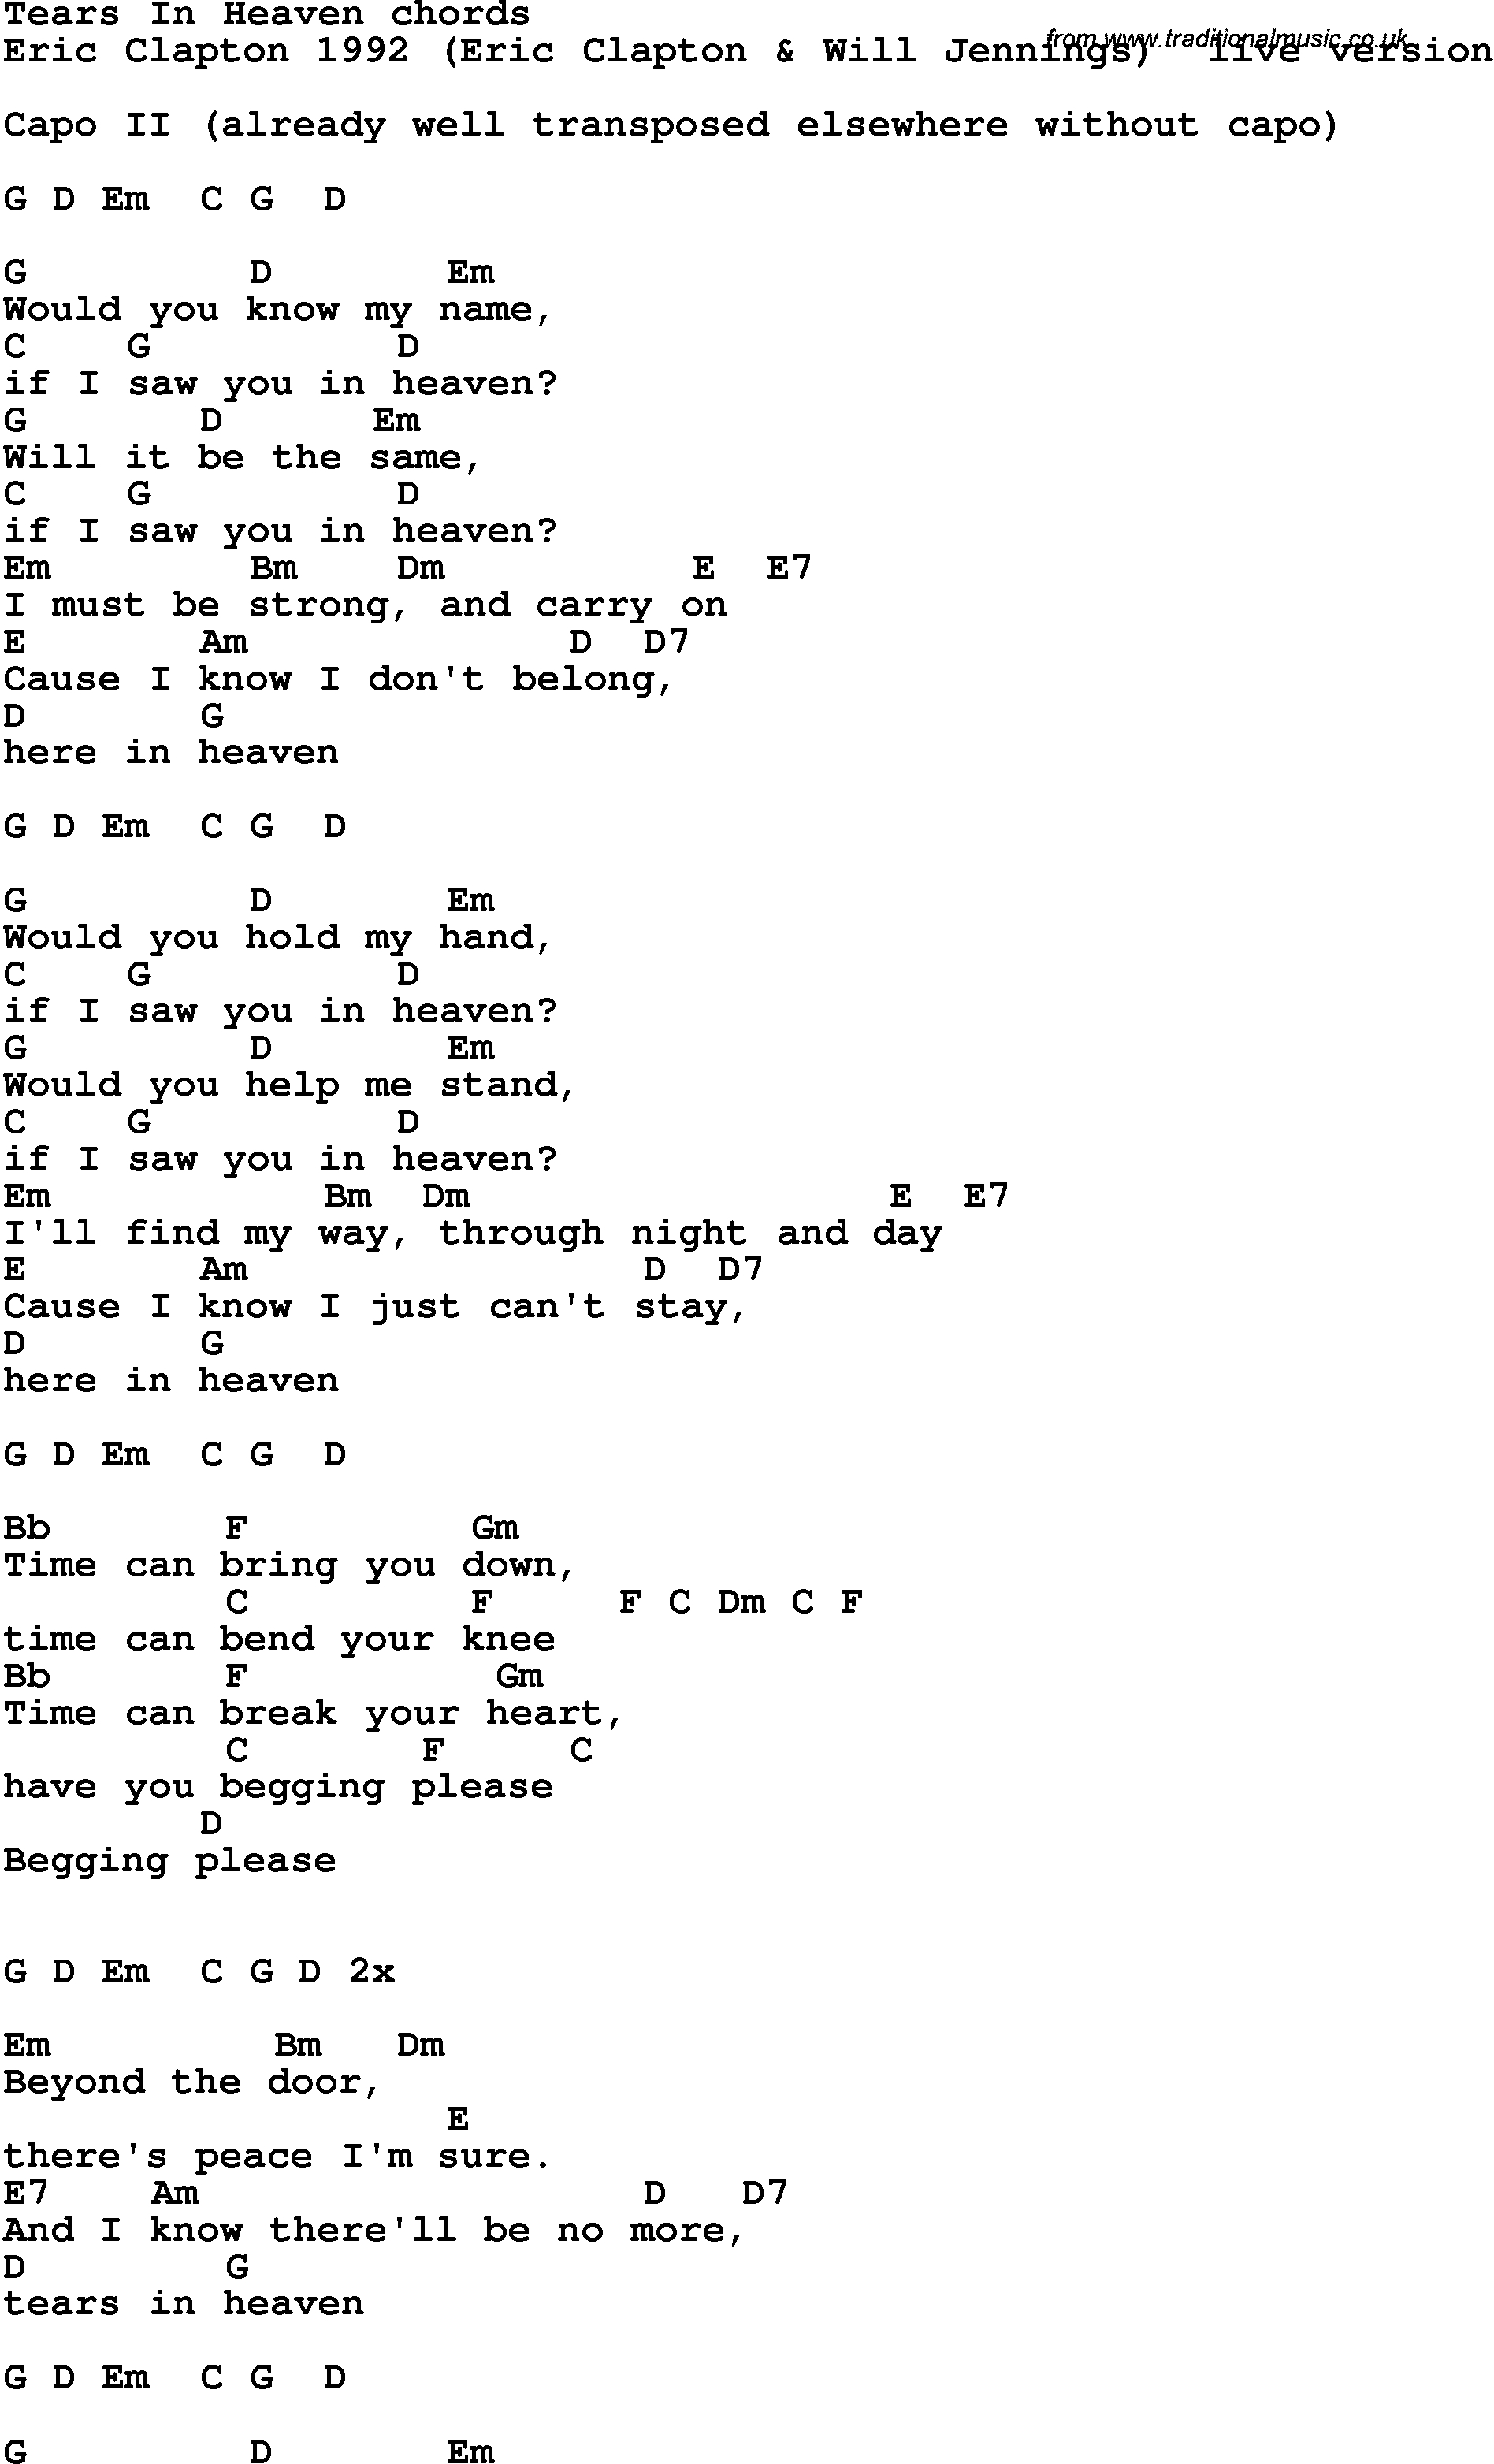 Tears In Heaven Chords Song Lyrics With Guitar Chords For Tears In Heaven Eric Clapton